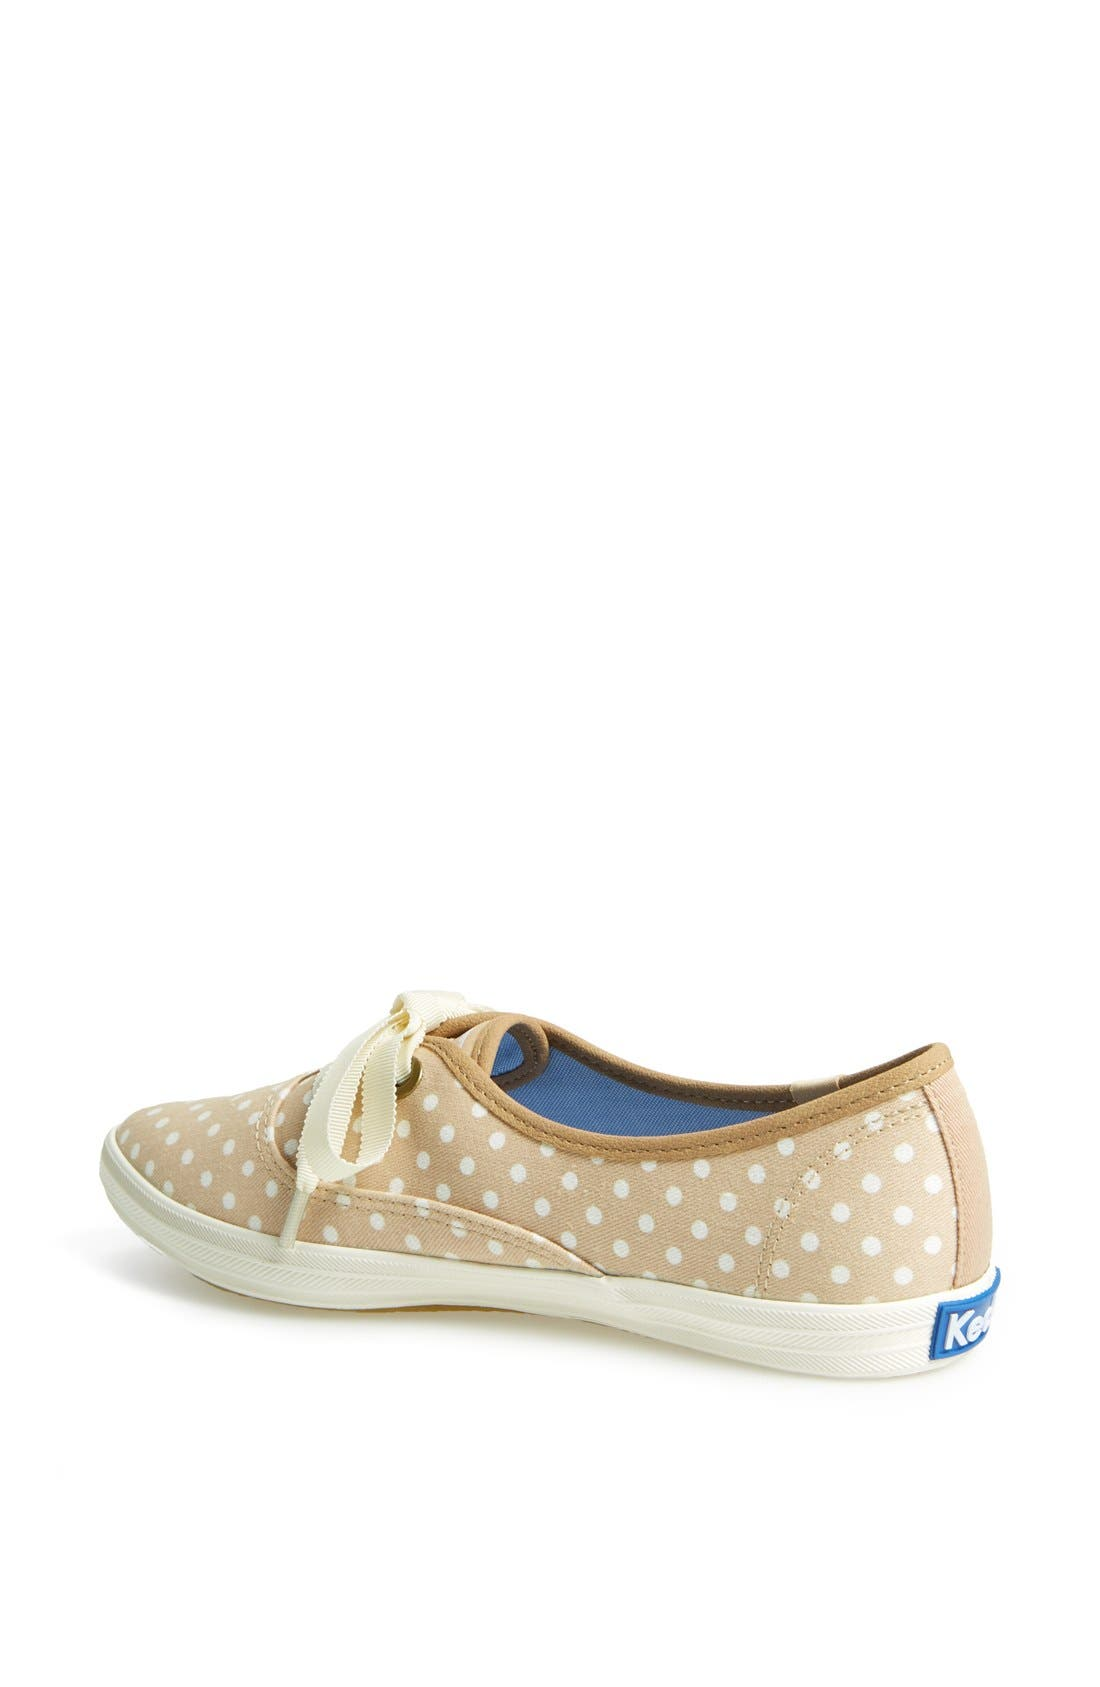 Alternate Image 2  - Keds® 'Pointer' Polka Dot Canvas Sneaker (Women)